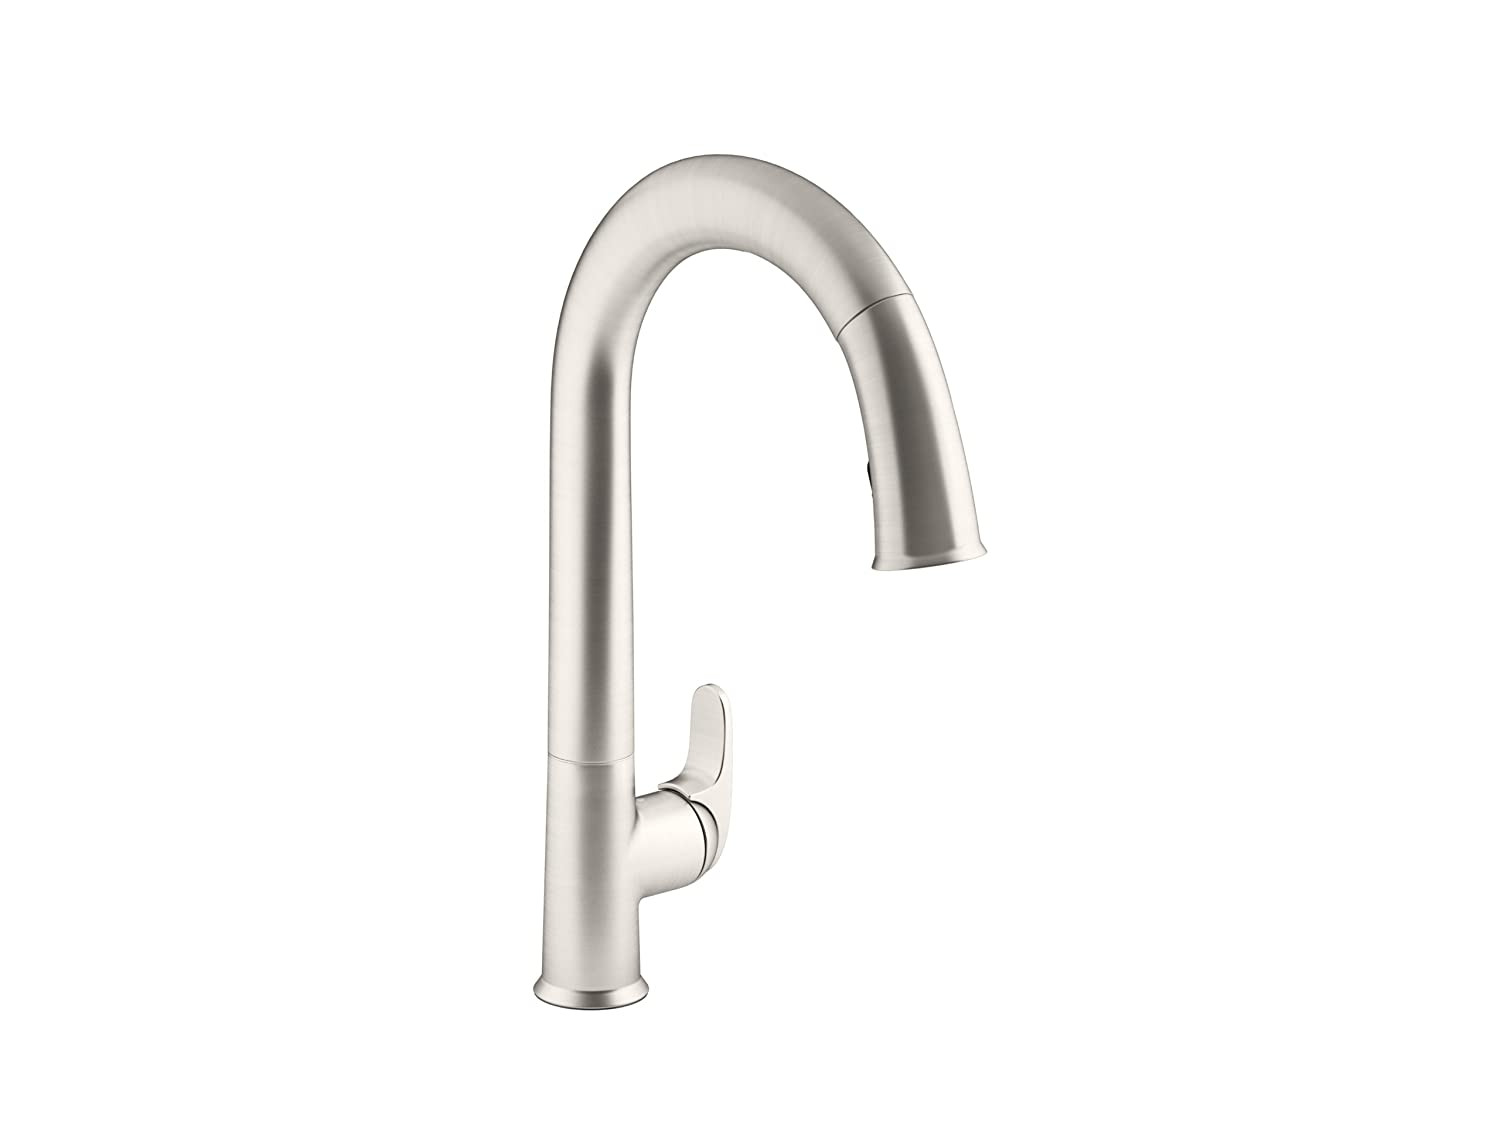 Hands-Free Kitchen Faucets – Moen Arbor VS Kohler Sensate | Best ...